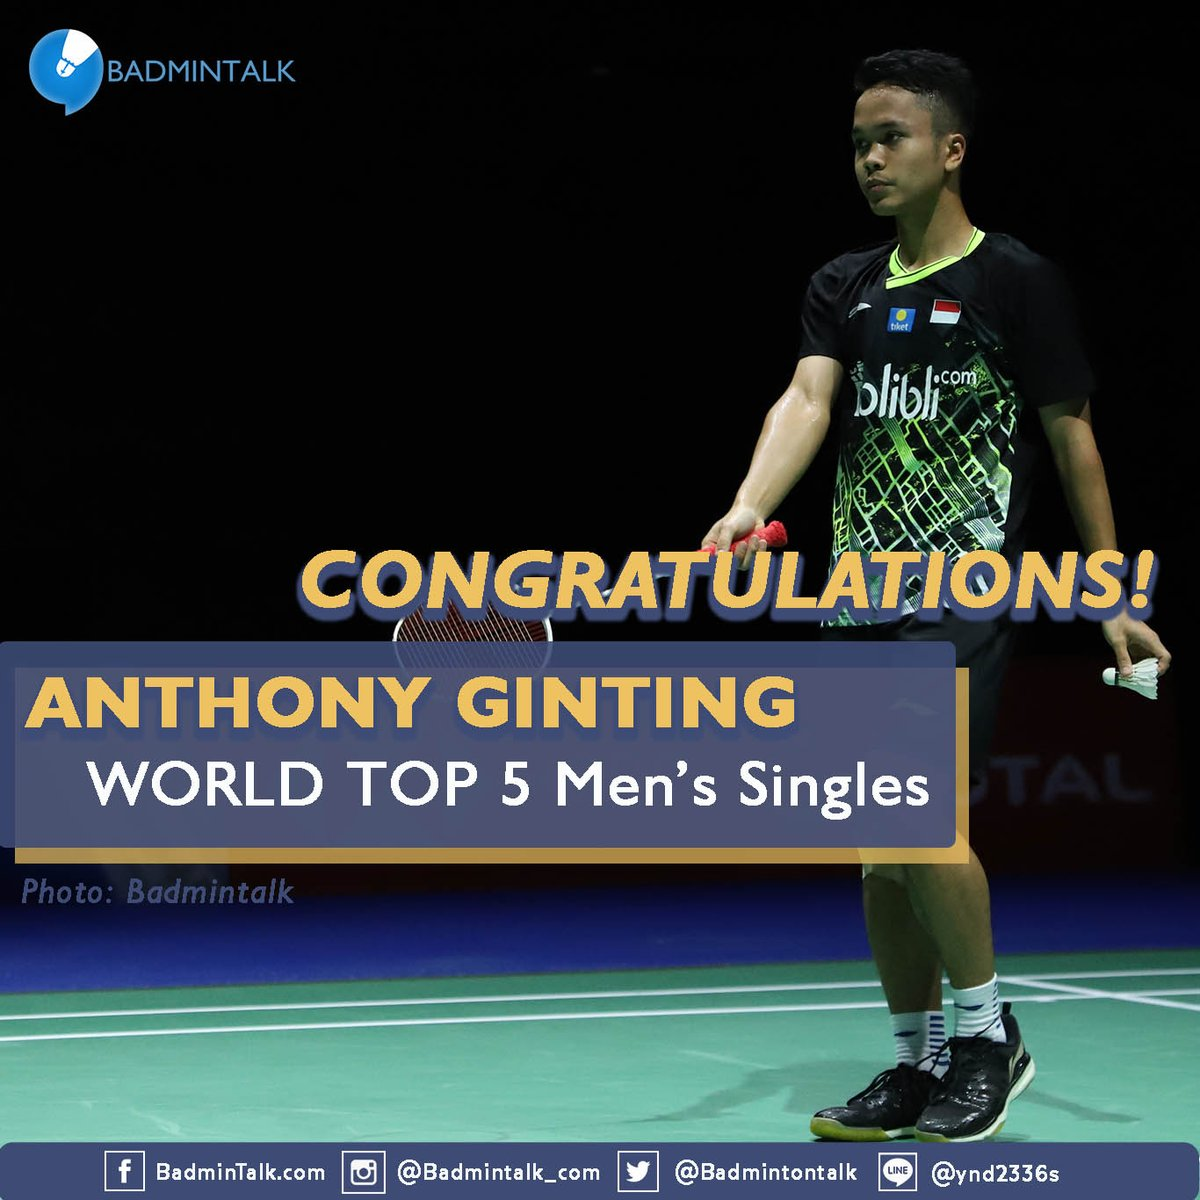 NEW CAREER-HIGH RANKING!!Congratulations to ANTHONY SINISUKA GINTING for reaching World Top 5 Men's Singles FOR THE FIRST TIME EVER after winning #IndonesiaMasters2020 Well deserved!!!